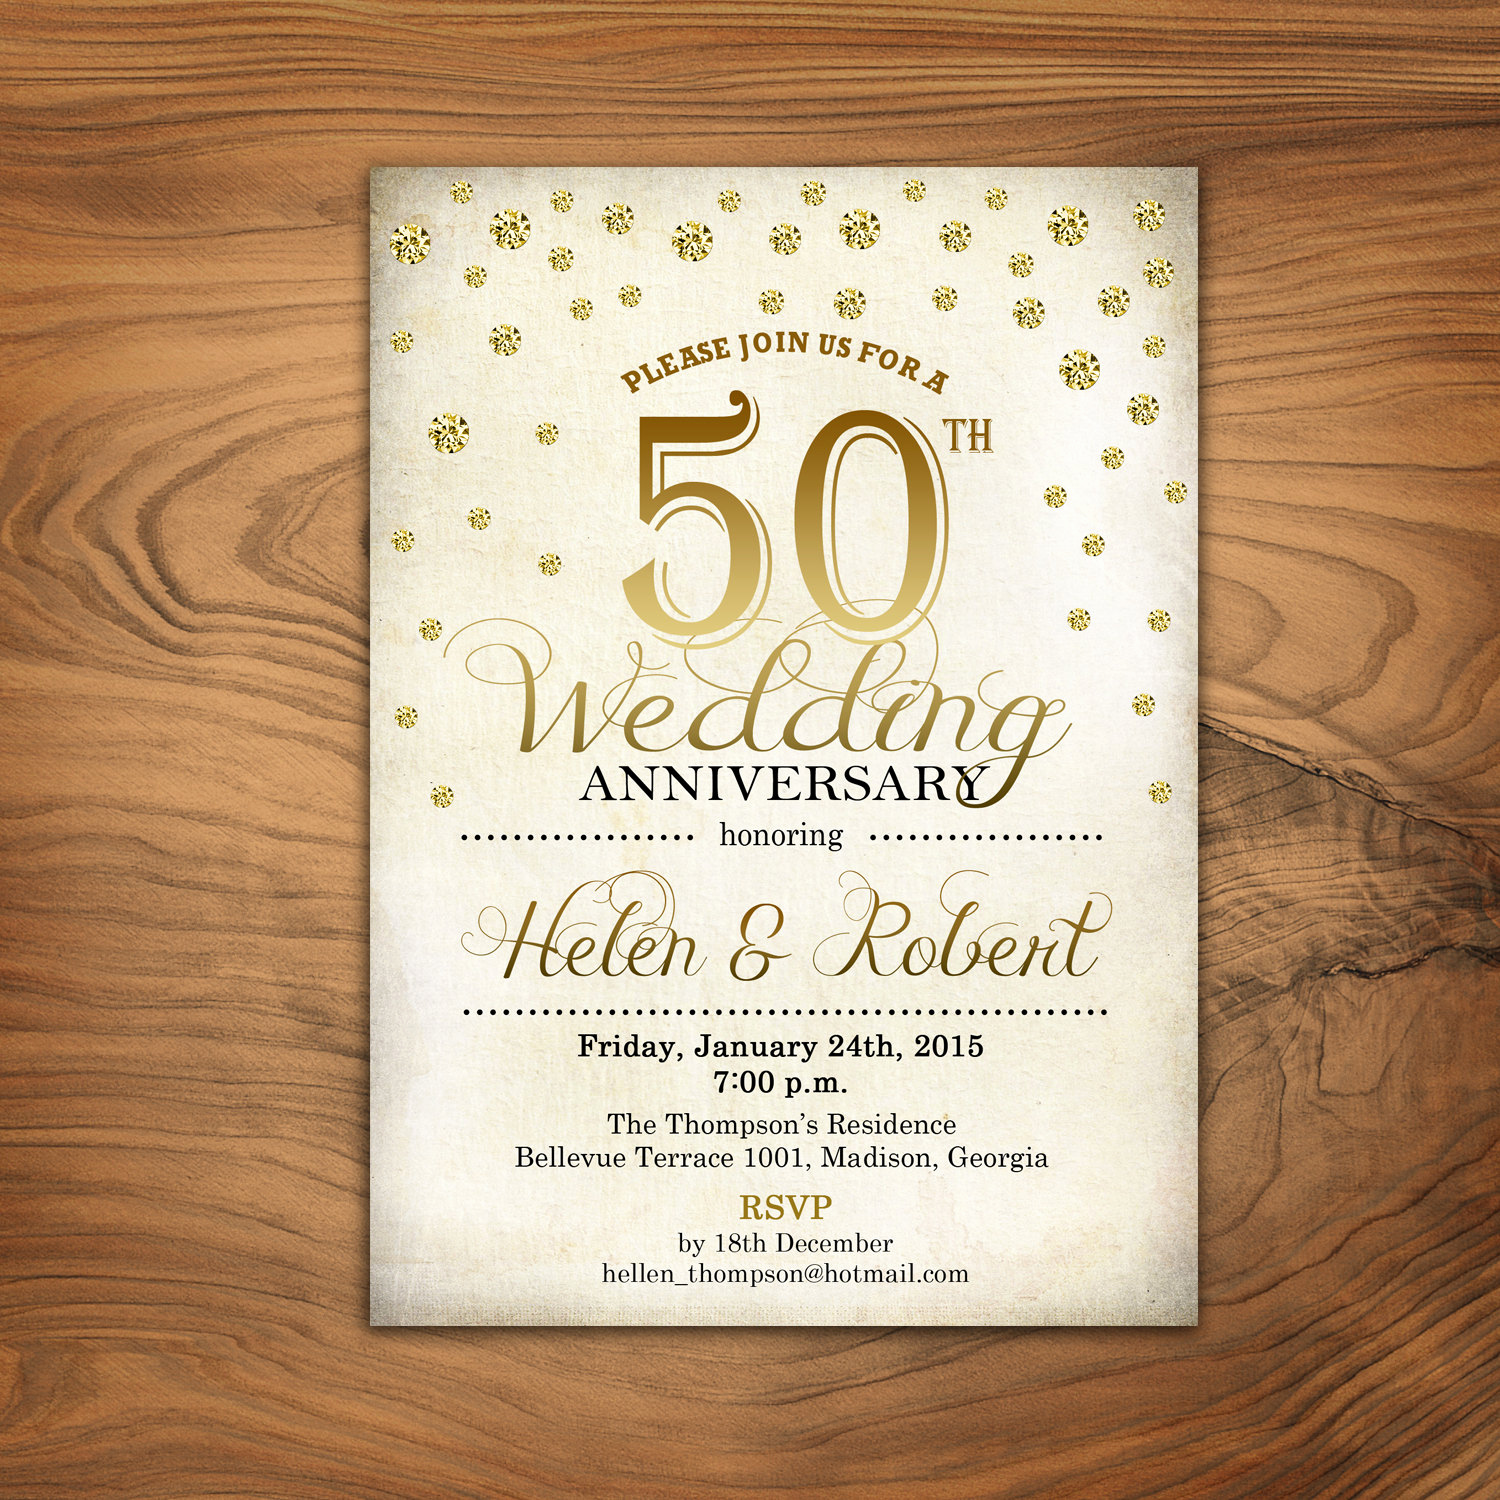 50th Anniversary Invitation Wording Best Of 50th Wedding Anniversary Invitation Gold White Retro